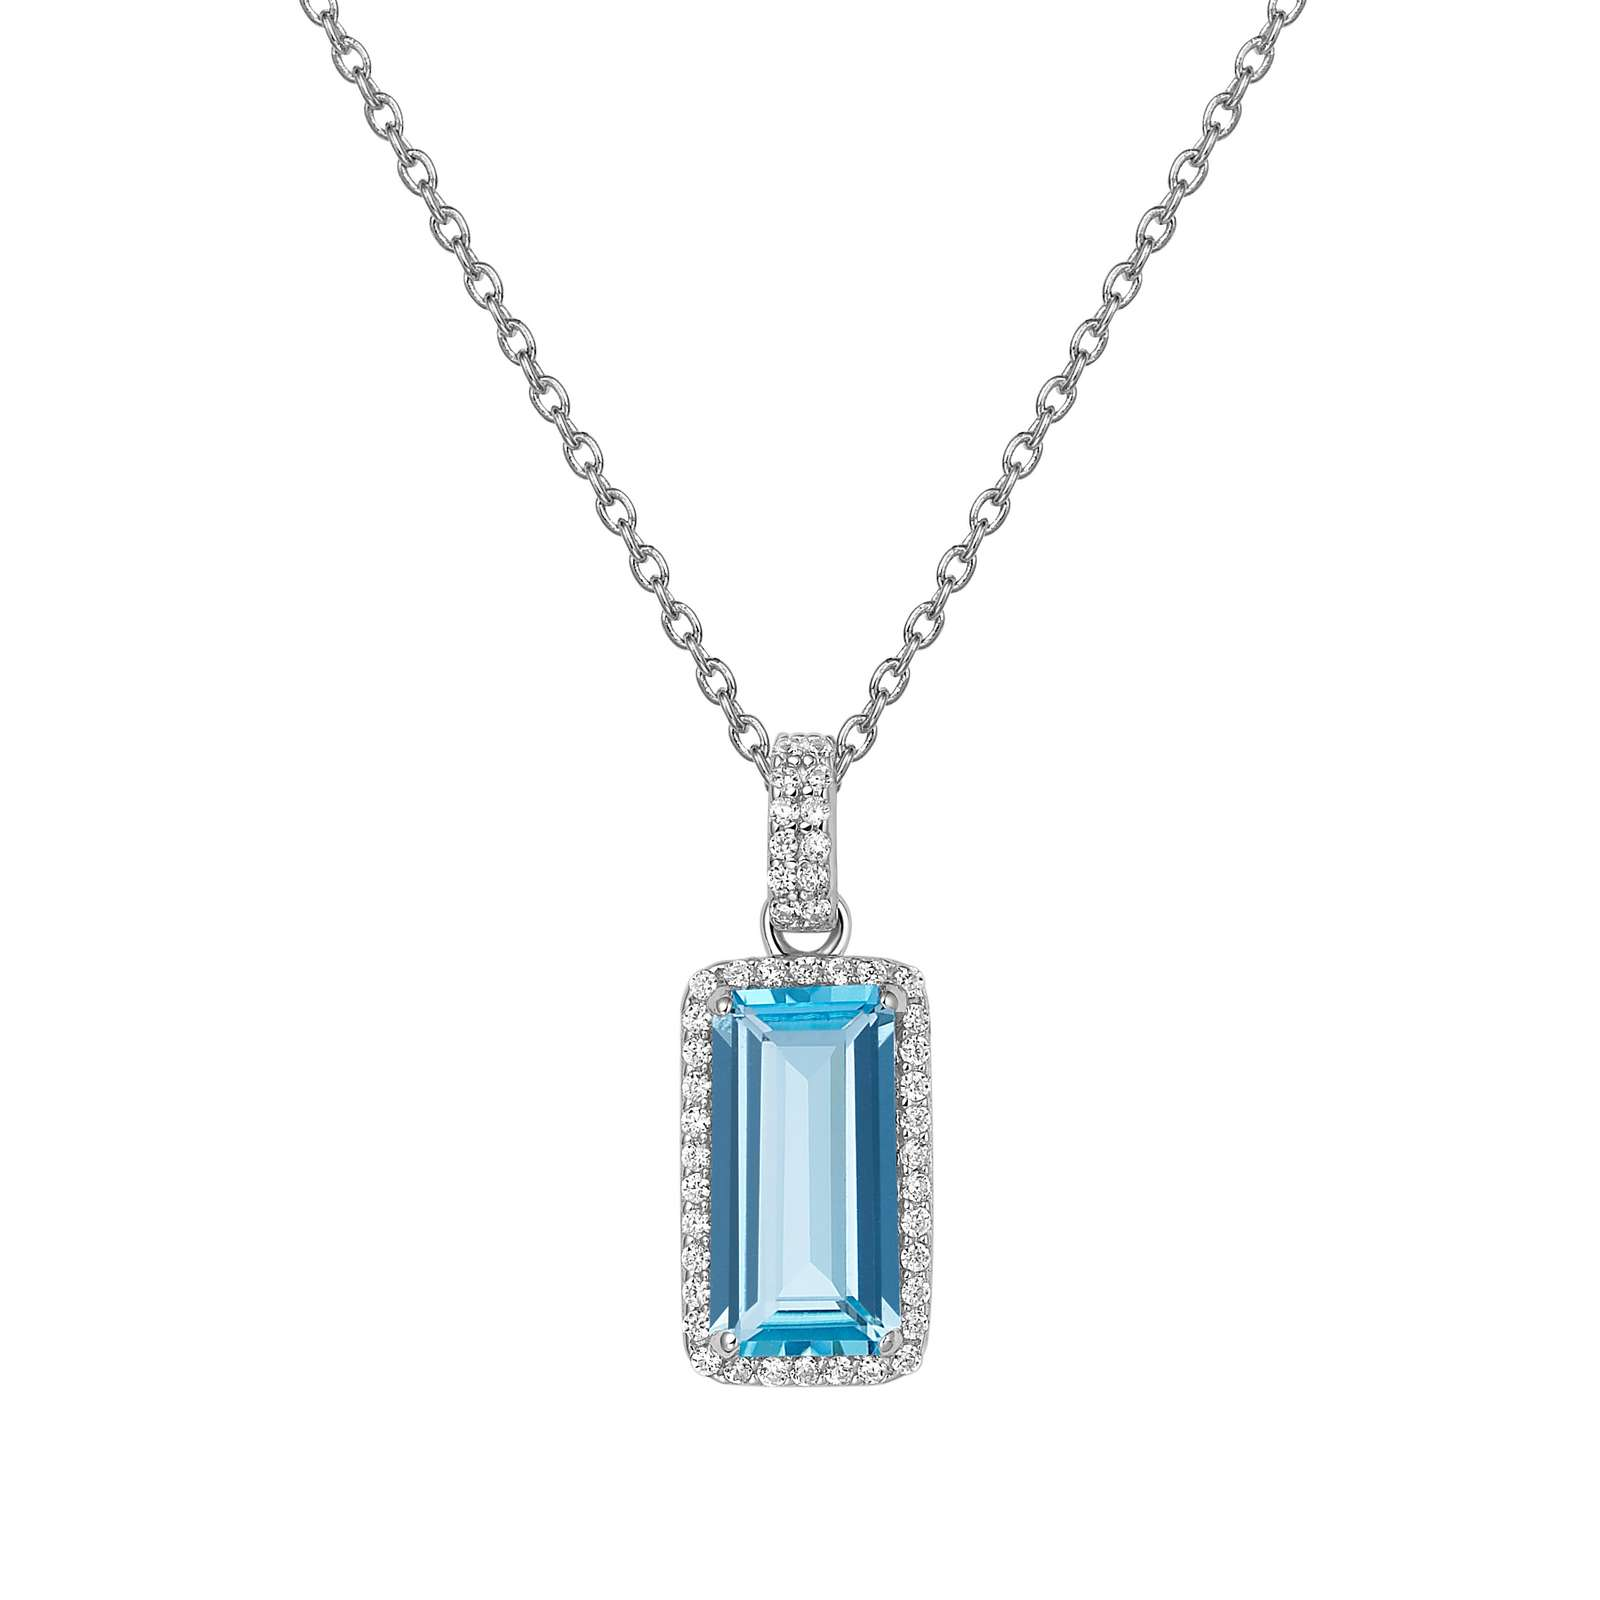 Aria Necklace - The sleek look of Lafonn's Aria pendant adds style to any ensemble. The pendant is set with a genuine emerald cut sky blue topaz surrounded by Lafonn's signature Lassaire simulated diamonds in sterling silver bonded with platinum. The pendant comes on an adjustable 18